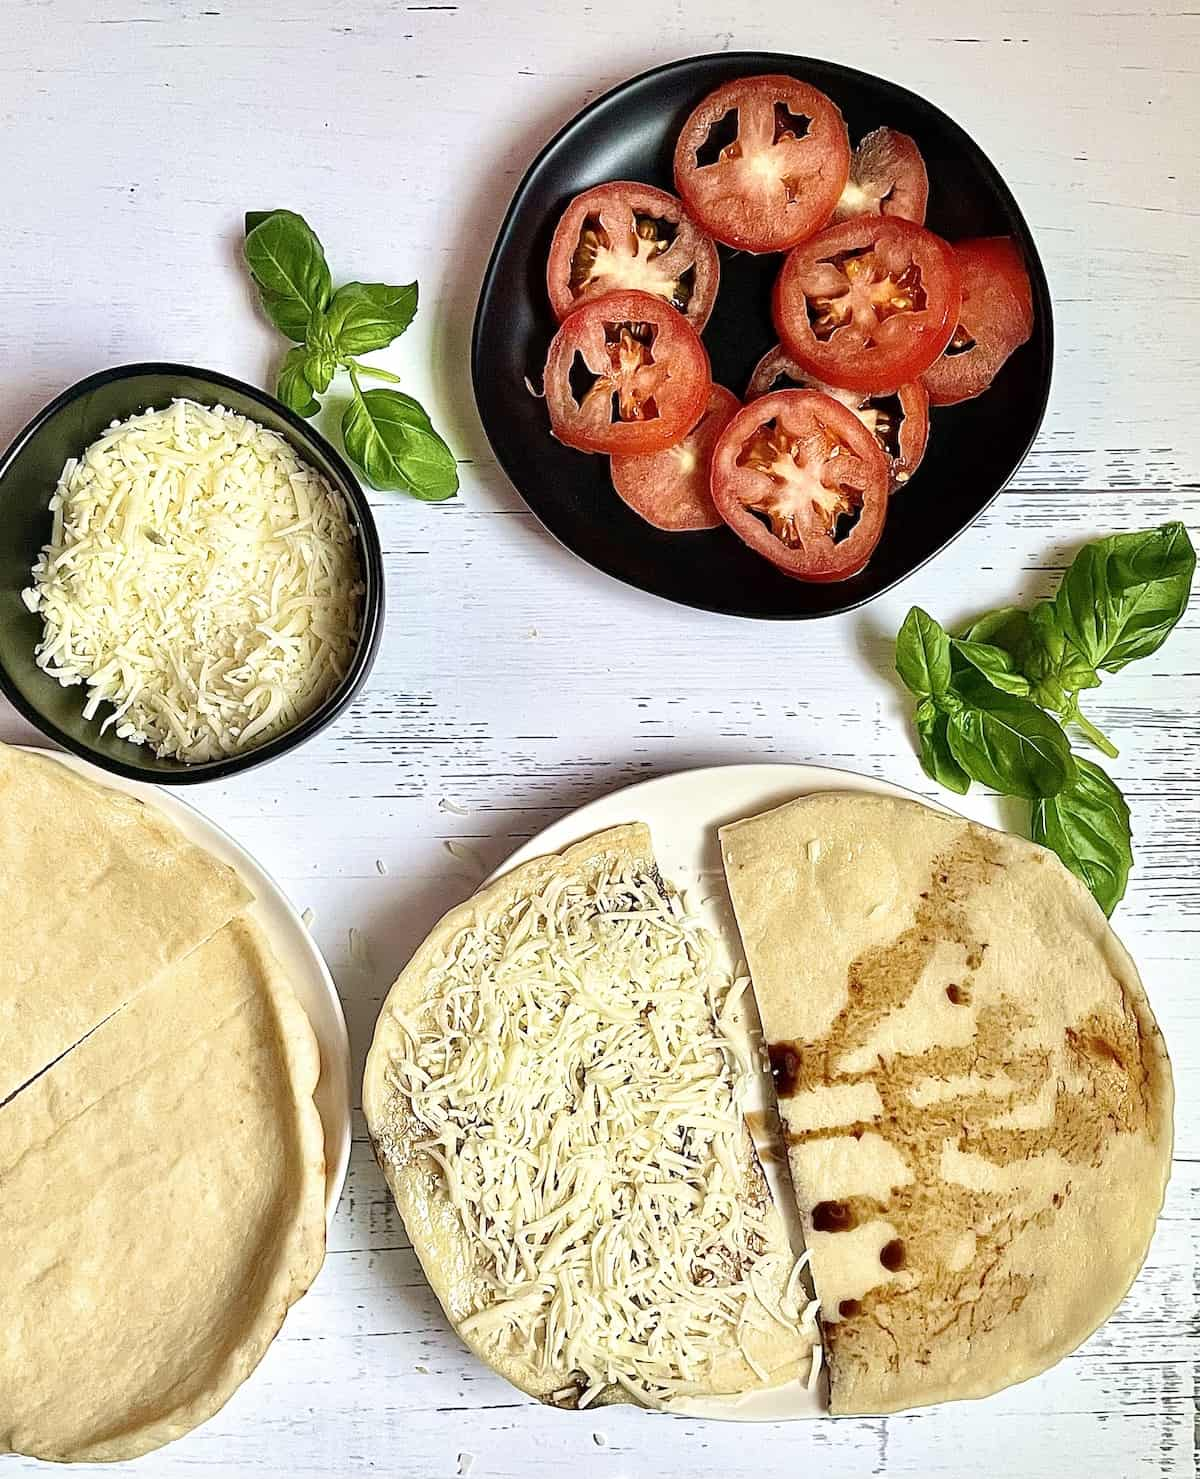 naan bread drizzled with balsamic and covered with mozzarella cheese